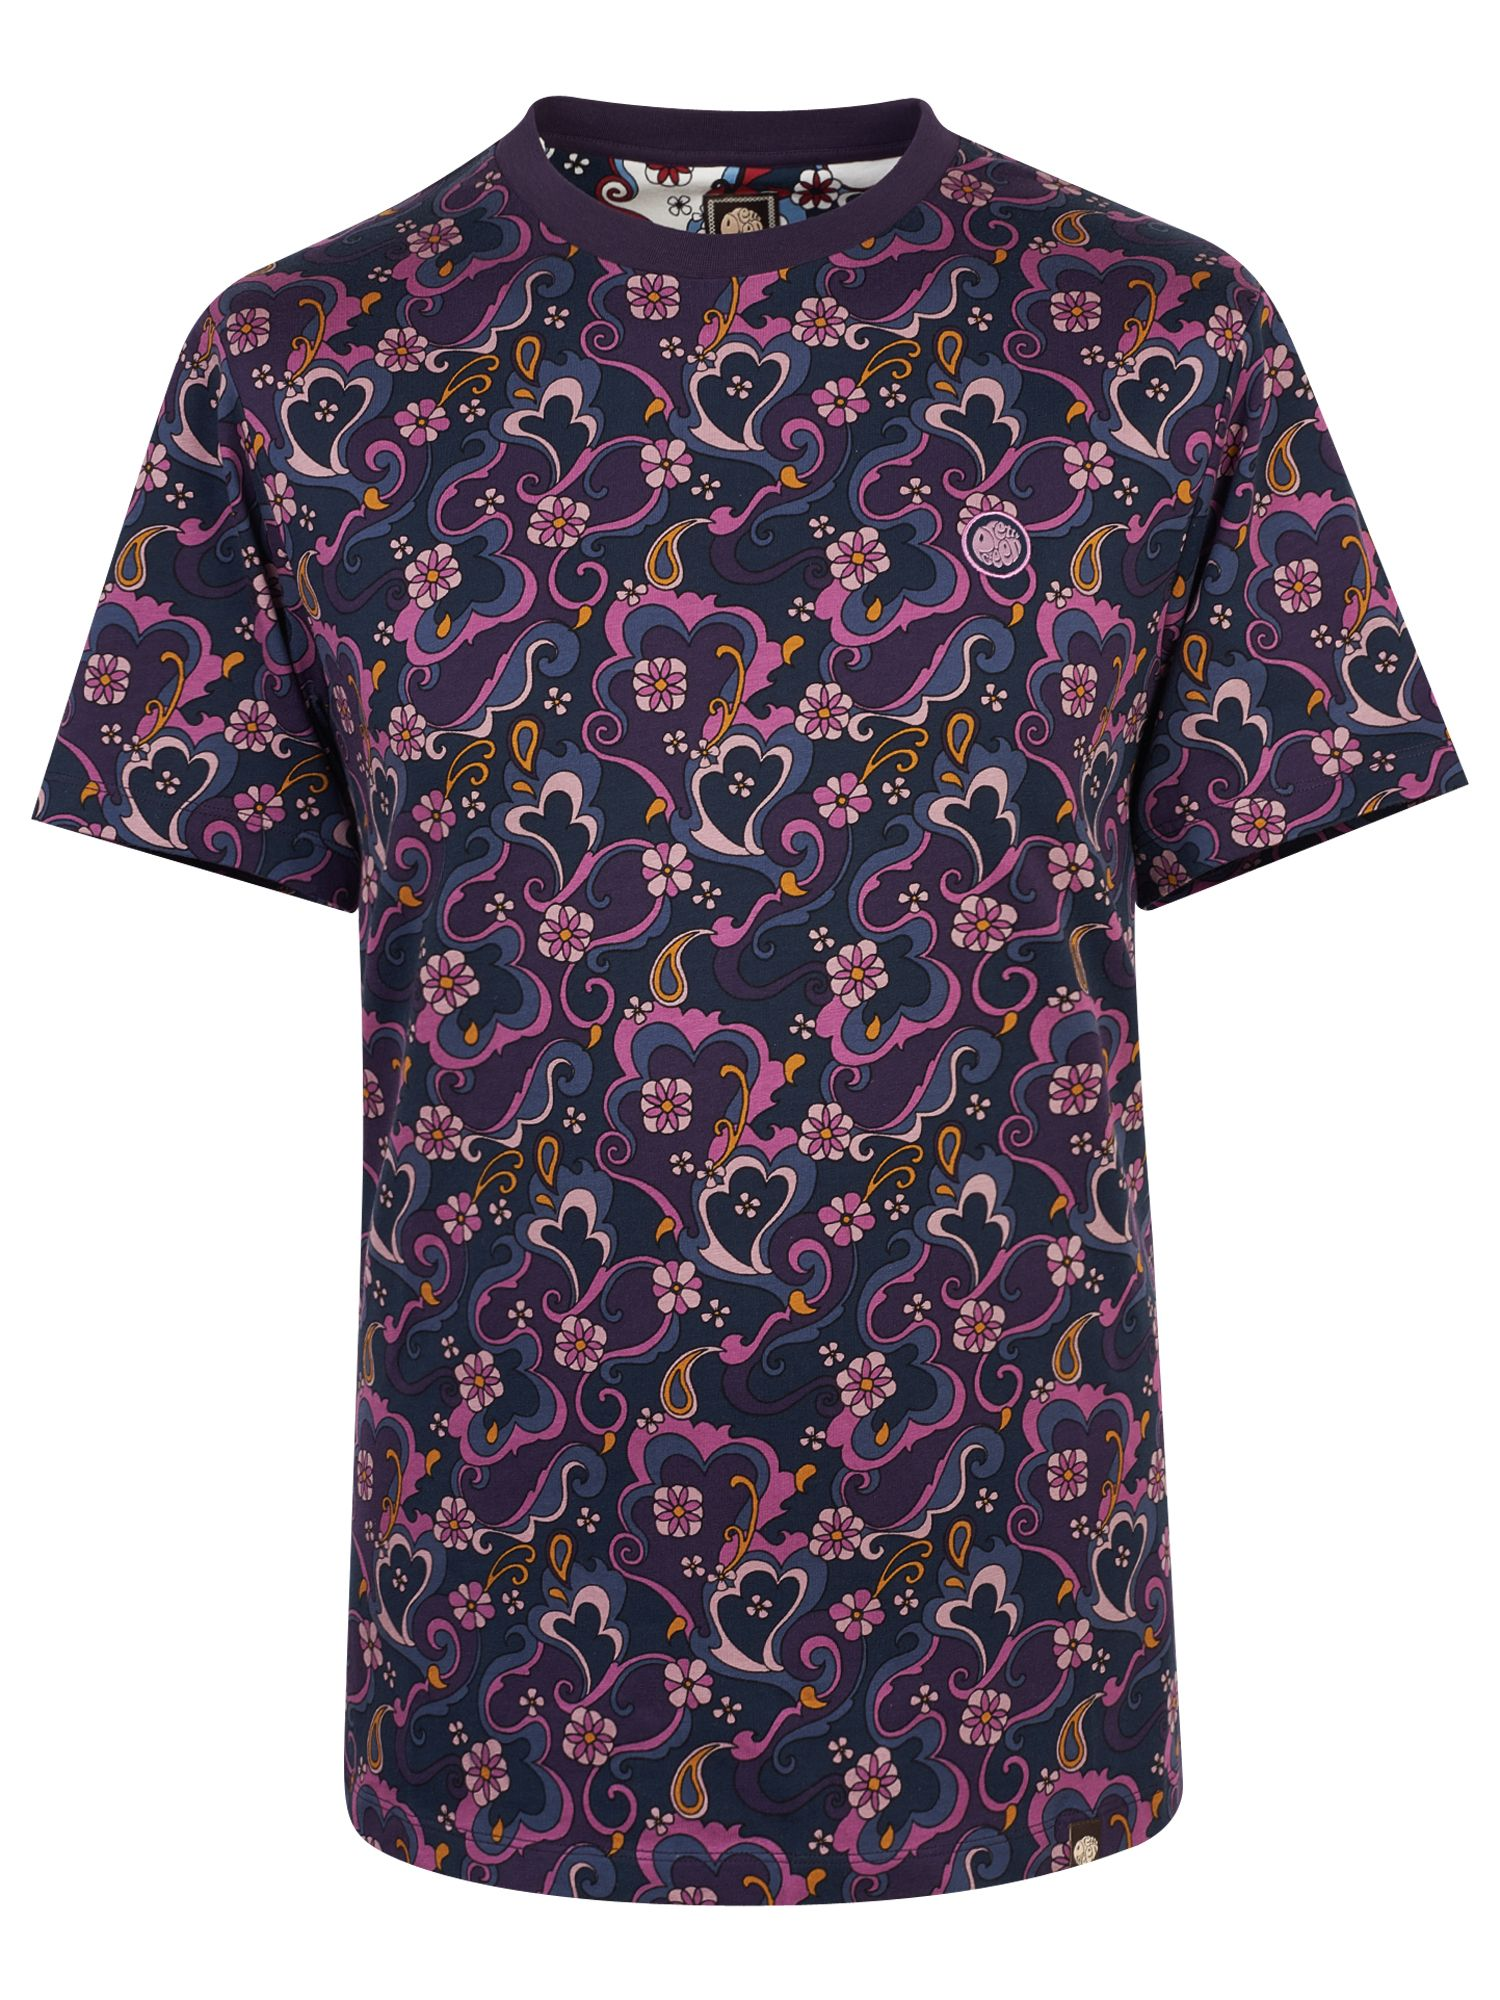 Men's Pretty Green Floral Paisley Print T-Shirt, Purple